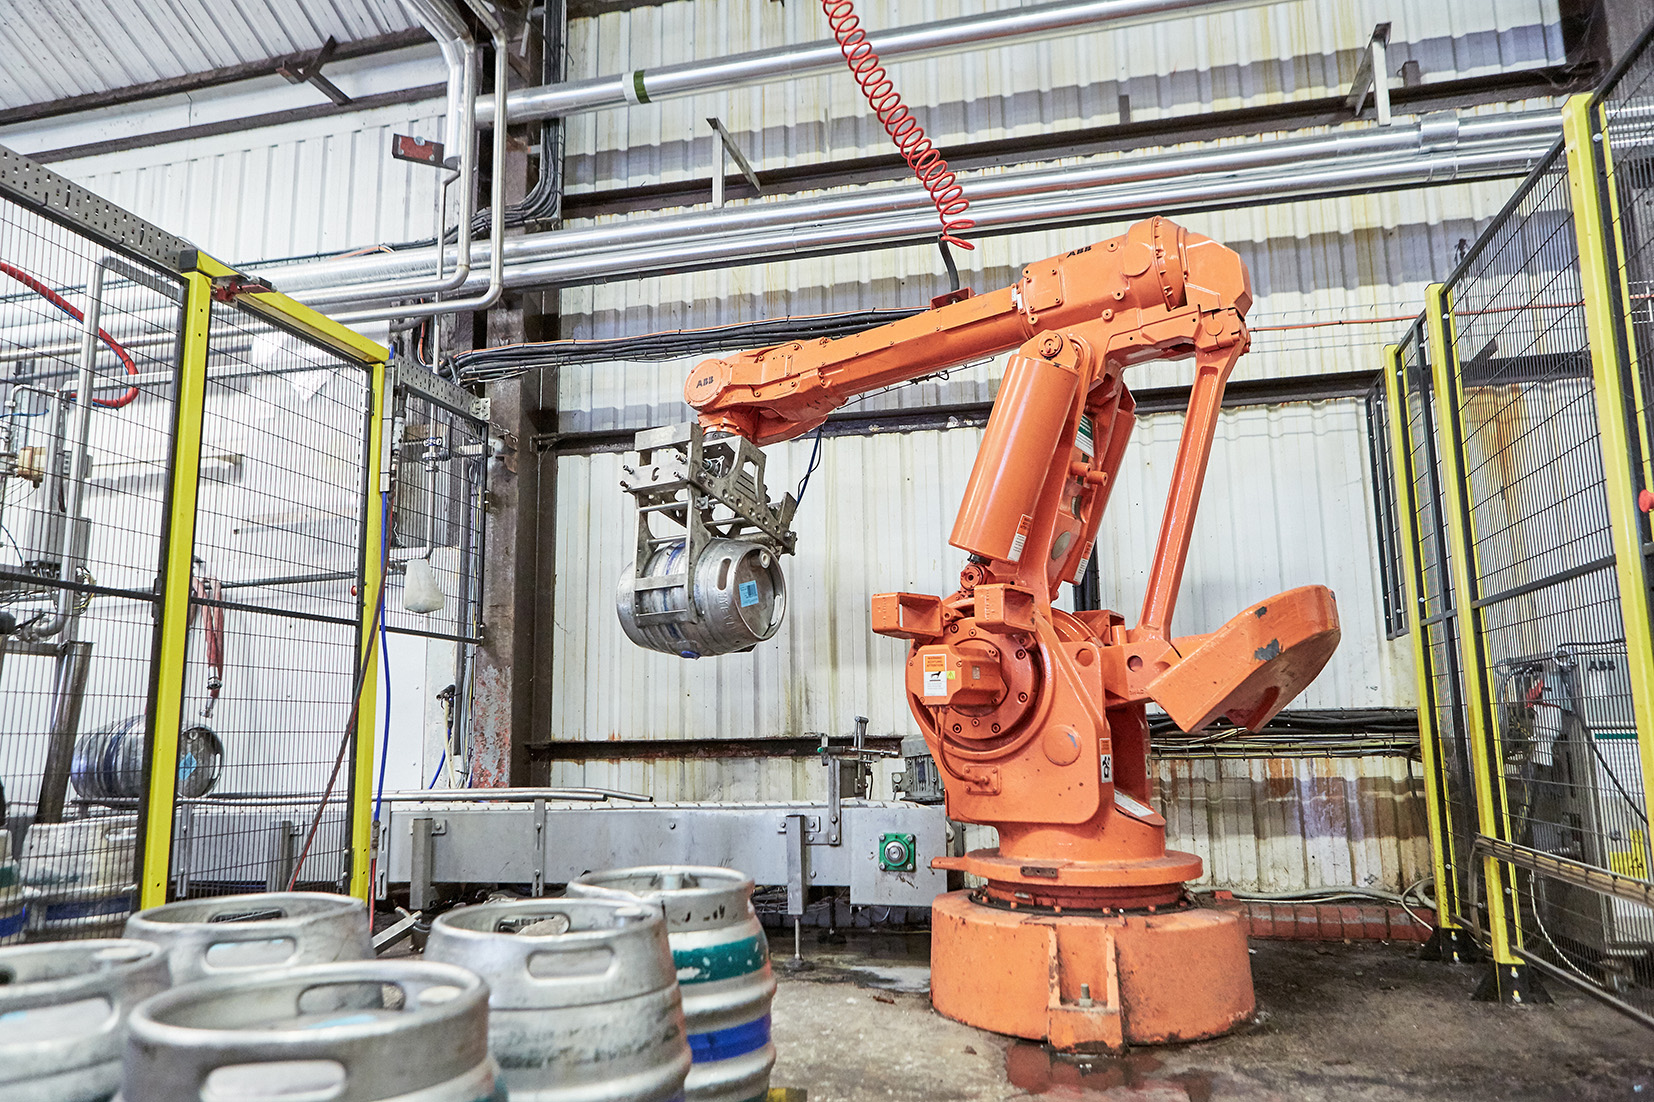 A robot at work at Wye Valley Brewery